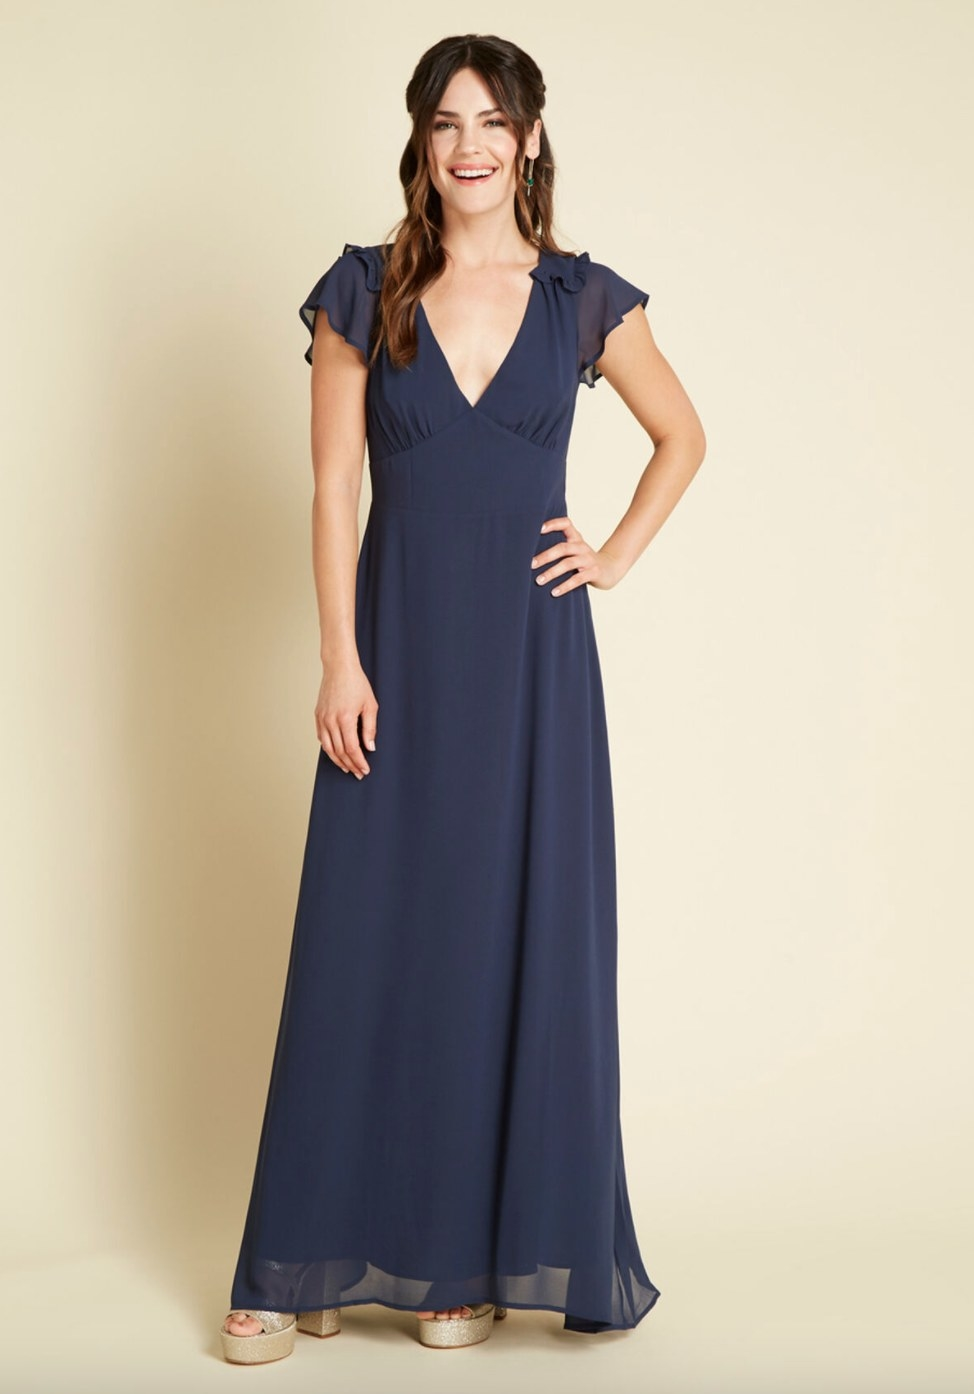 The flow maxi dress in navy being worn by a model in platform heels